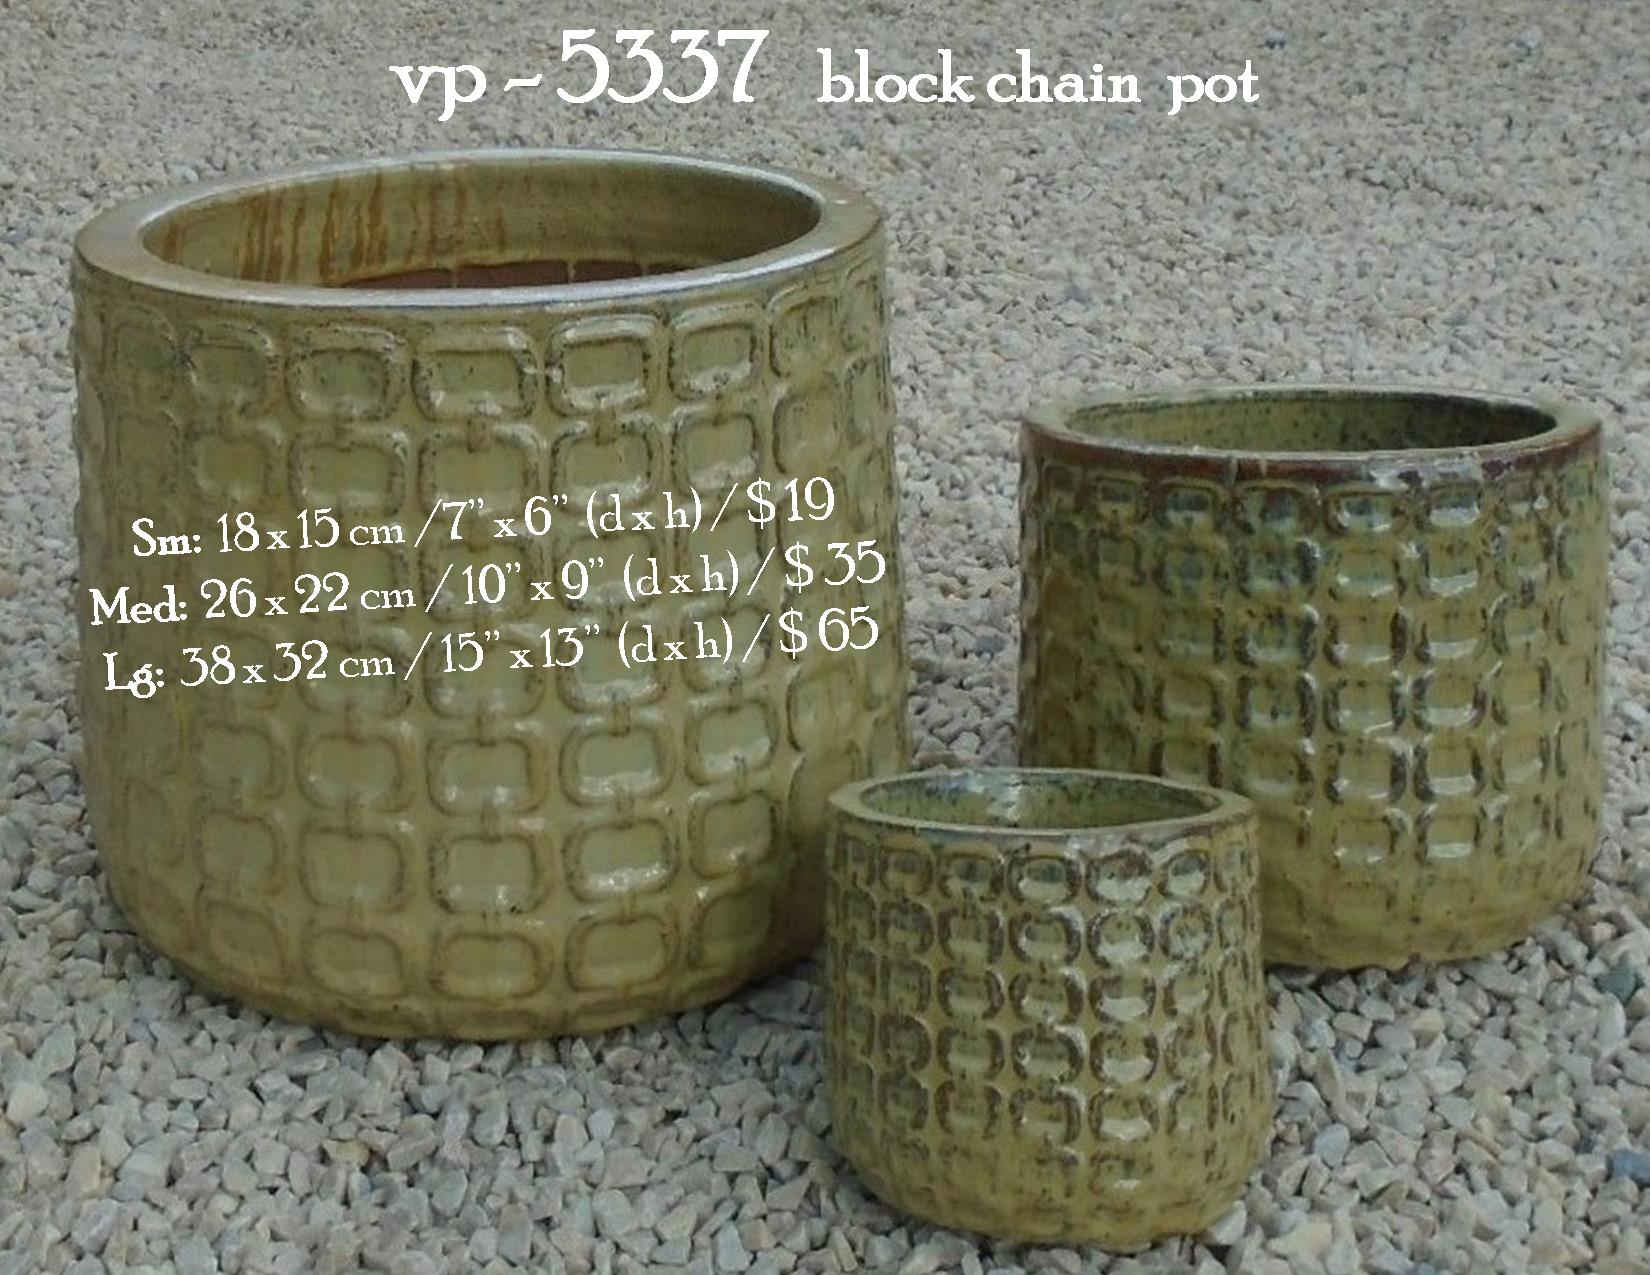 vp - 5337   block chain  pot